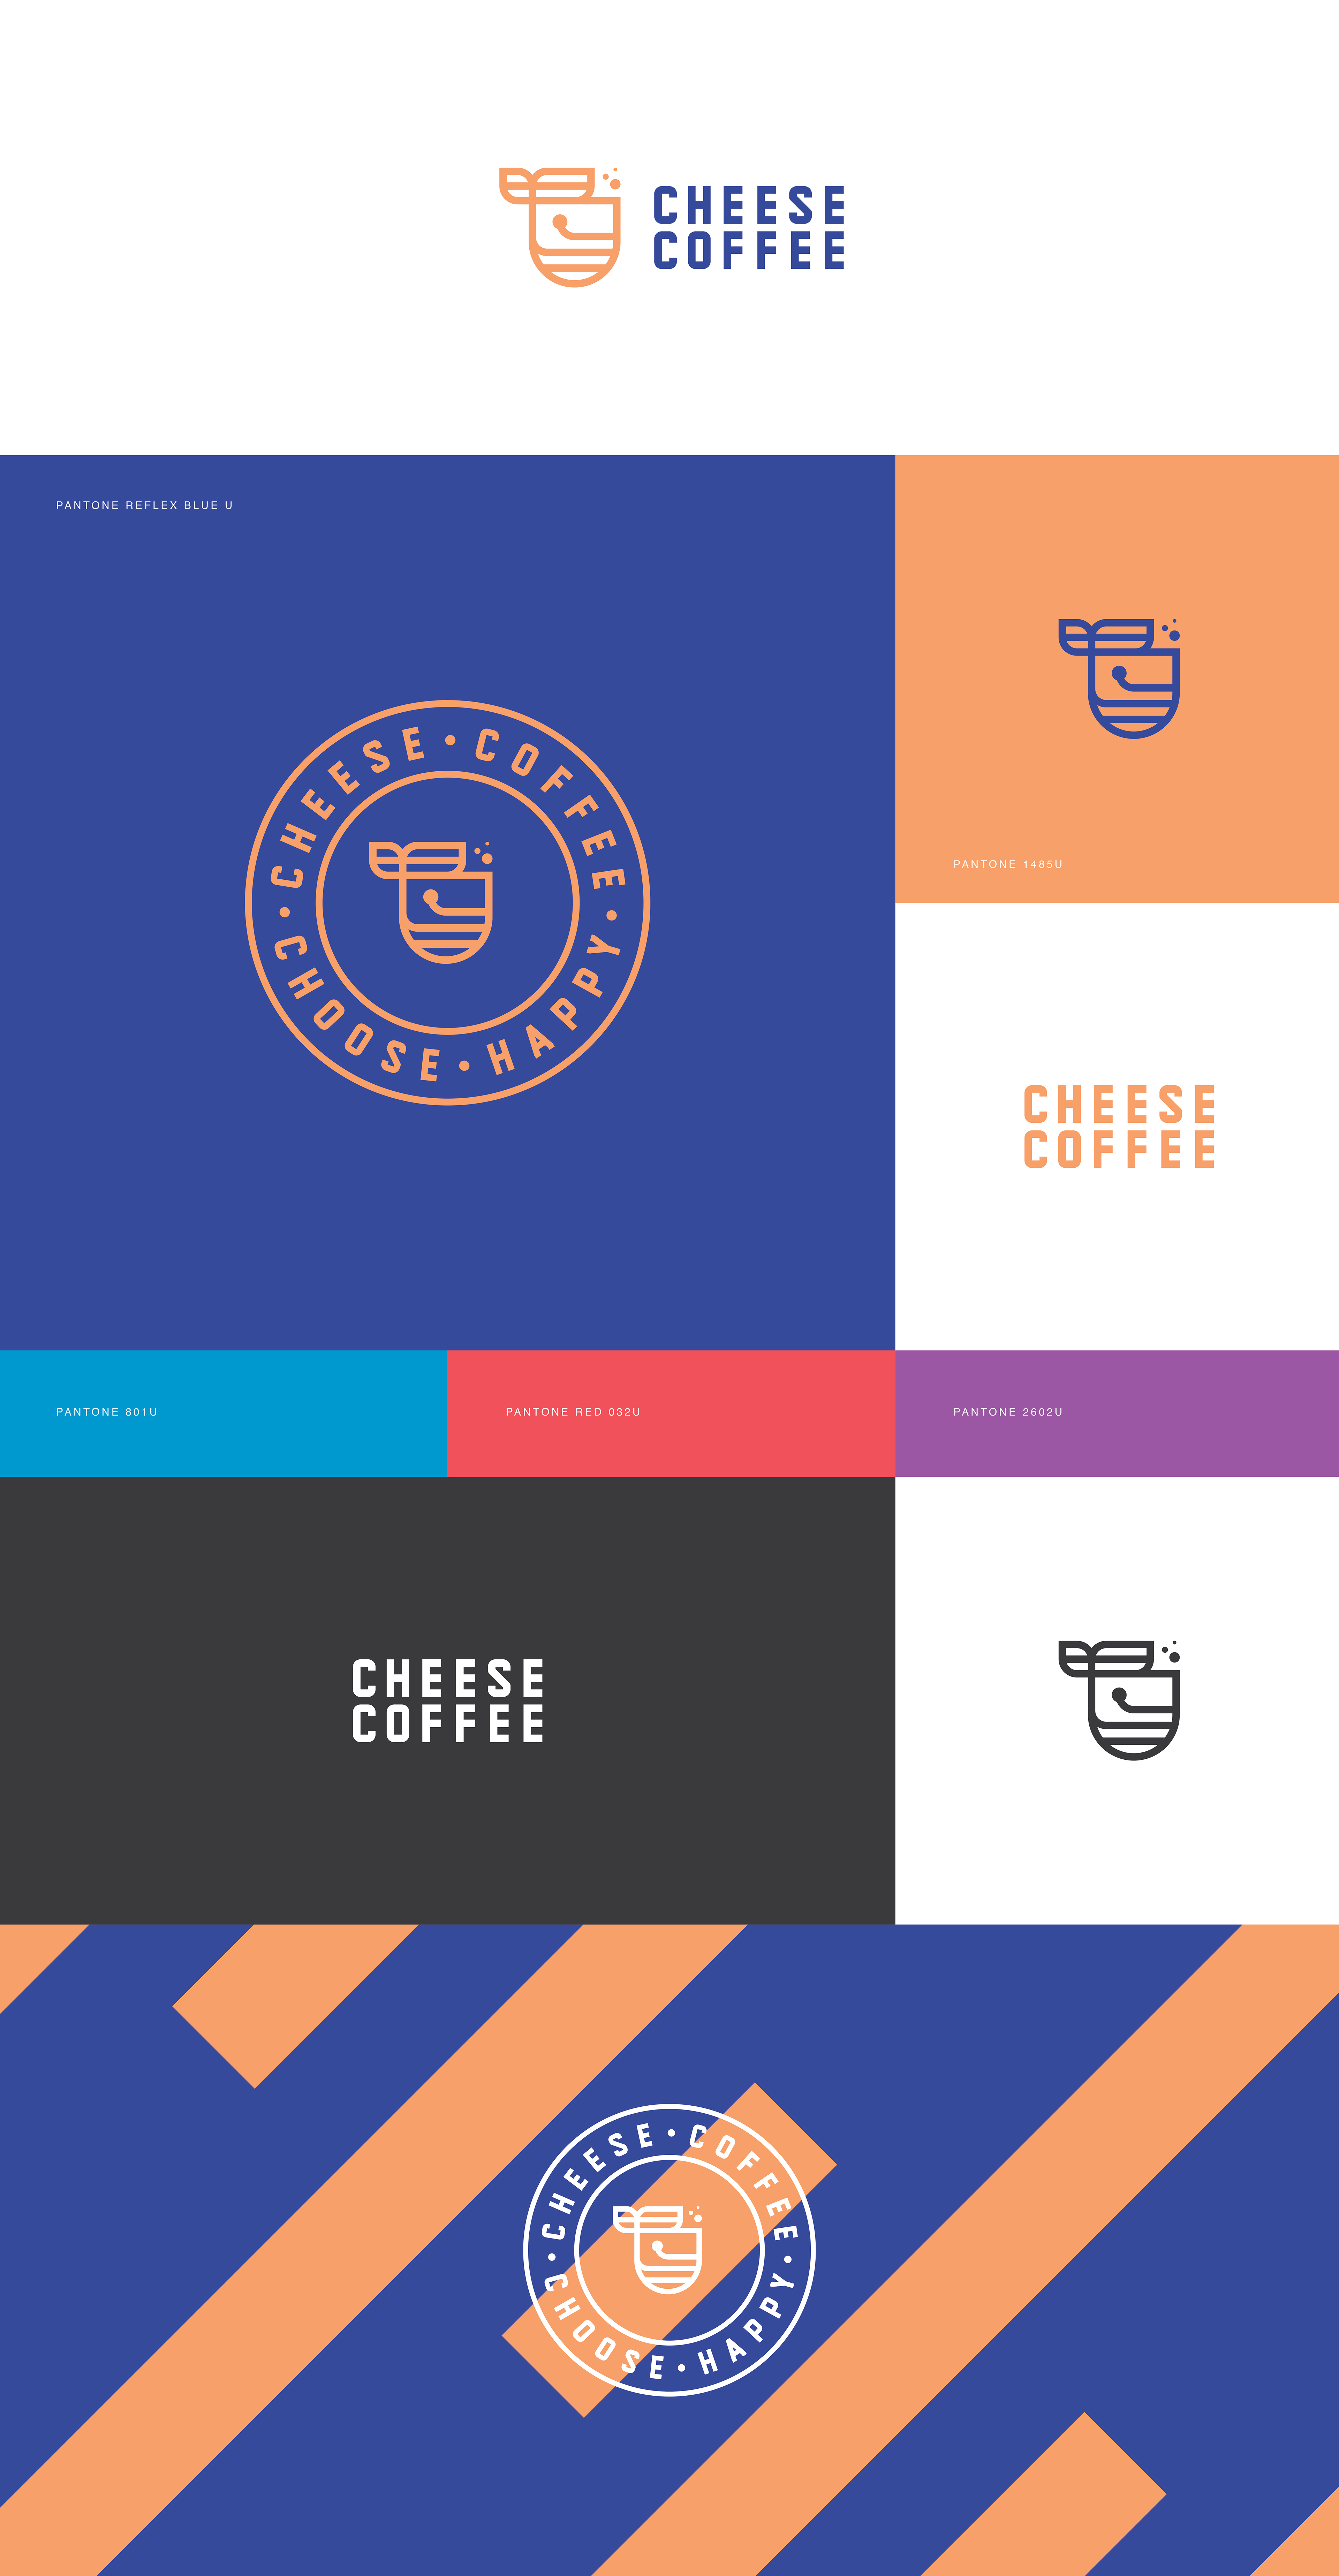 Coffee Logos Blue Red Wiring Diagrams 1187 Remington Diagram Http Wwwar15com Archive Topichtmlb6f49 Cheese On Behance Rh Net Design Bean Logo